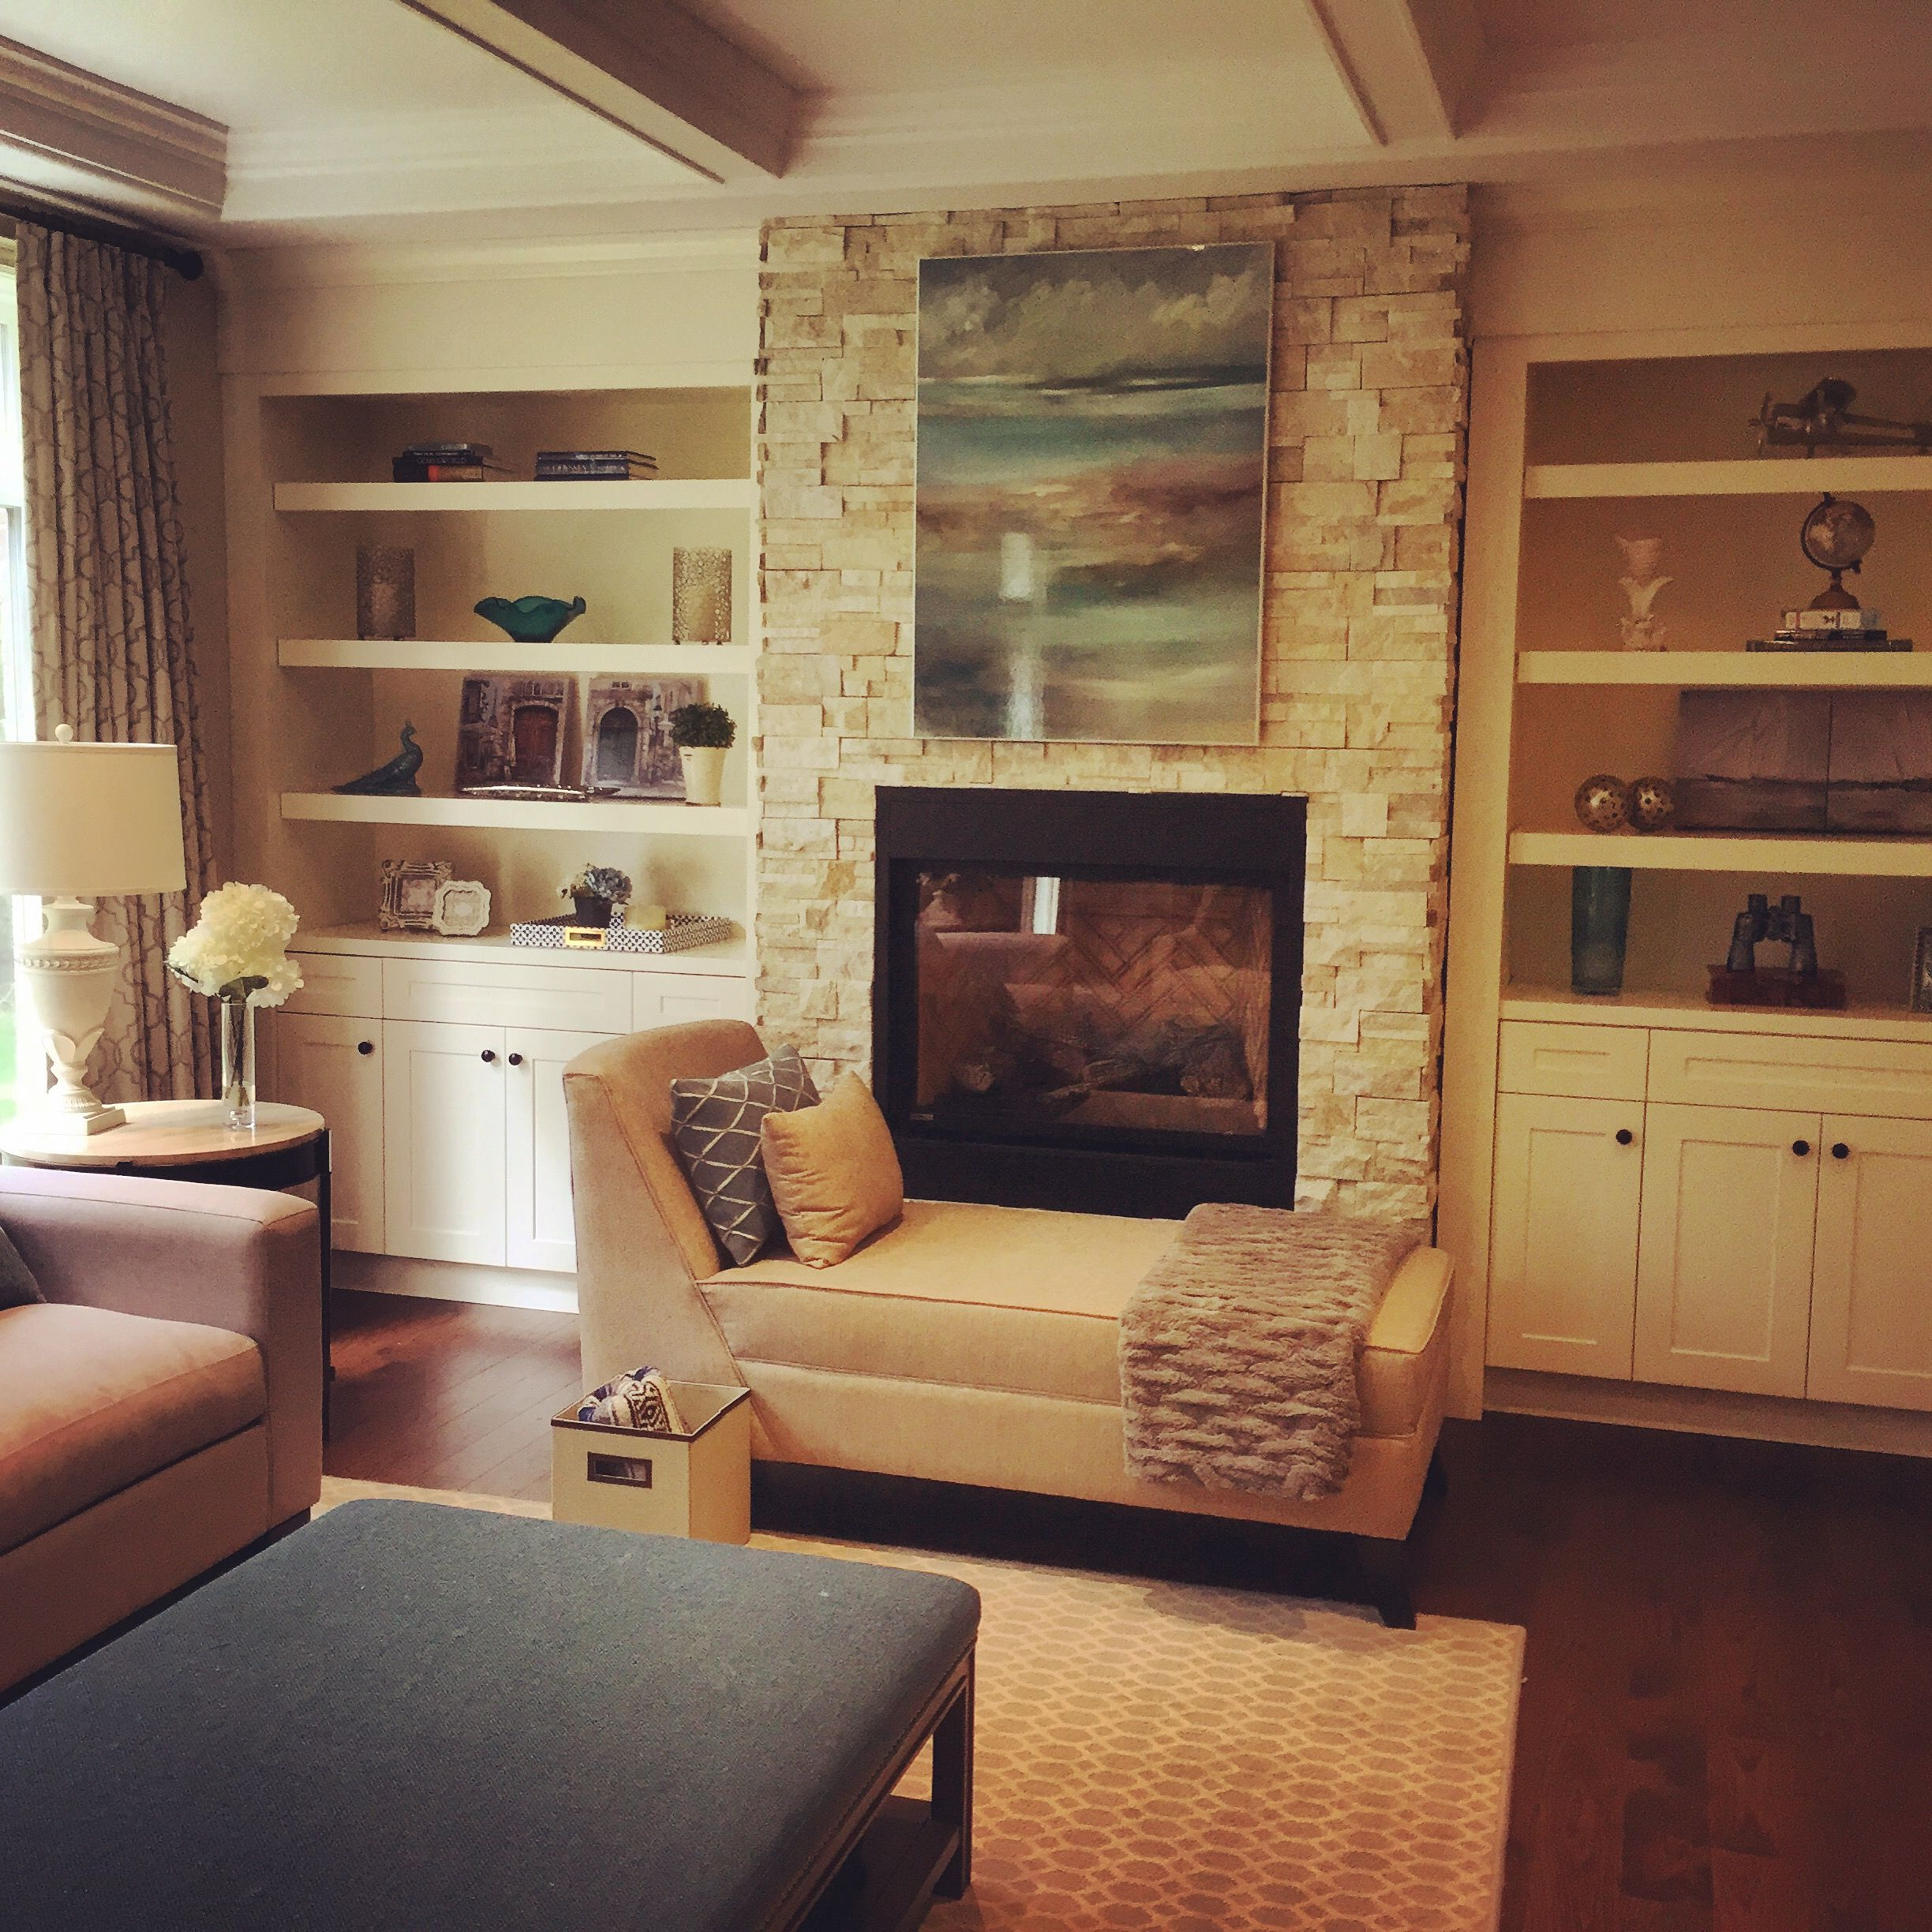 Stone Fireplace With Built In Cabinets: Built In Cabinets, Stone Fireplace And Custom Furnishings